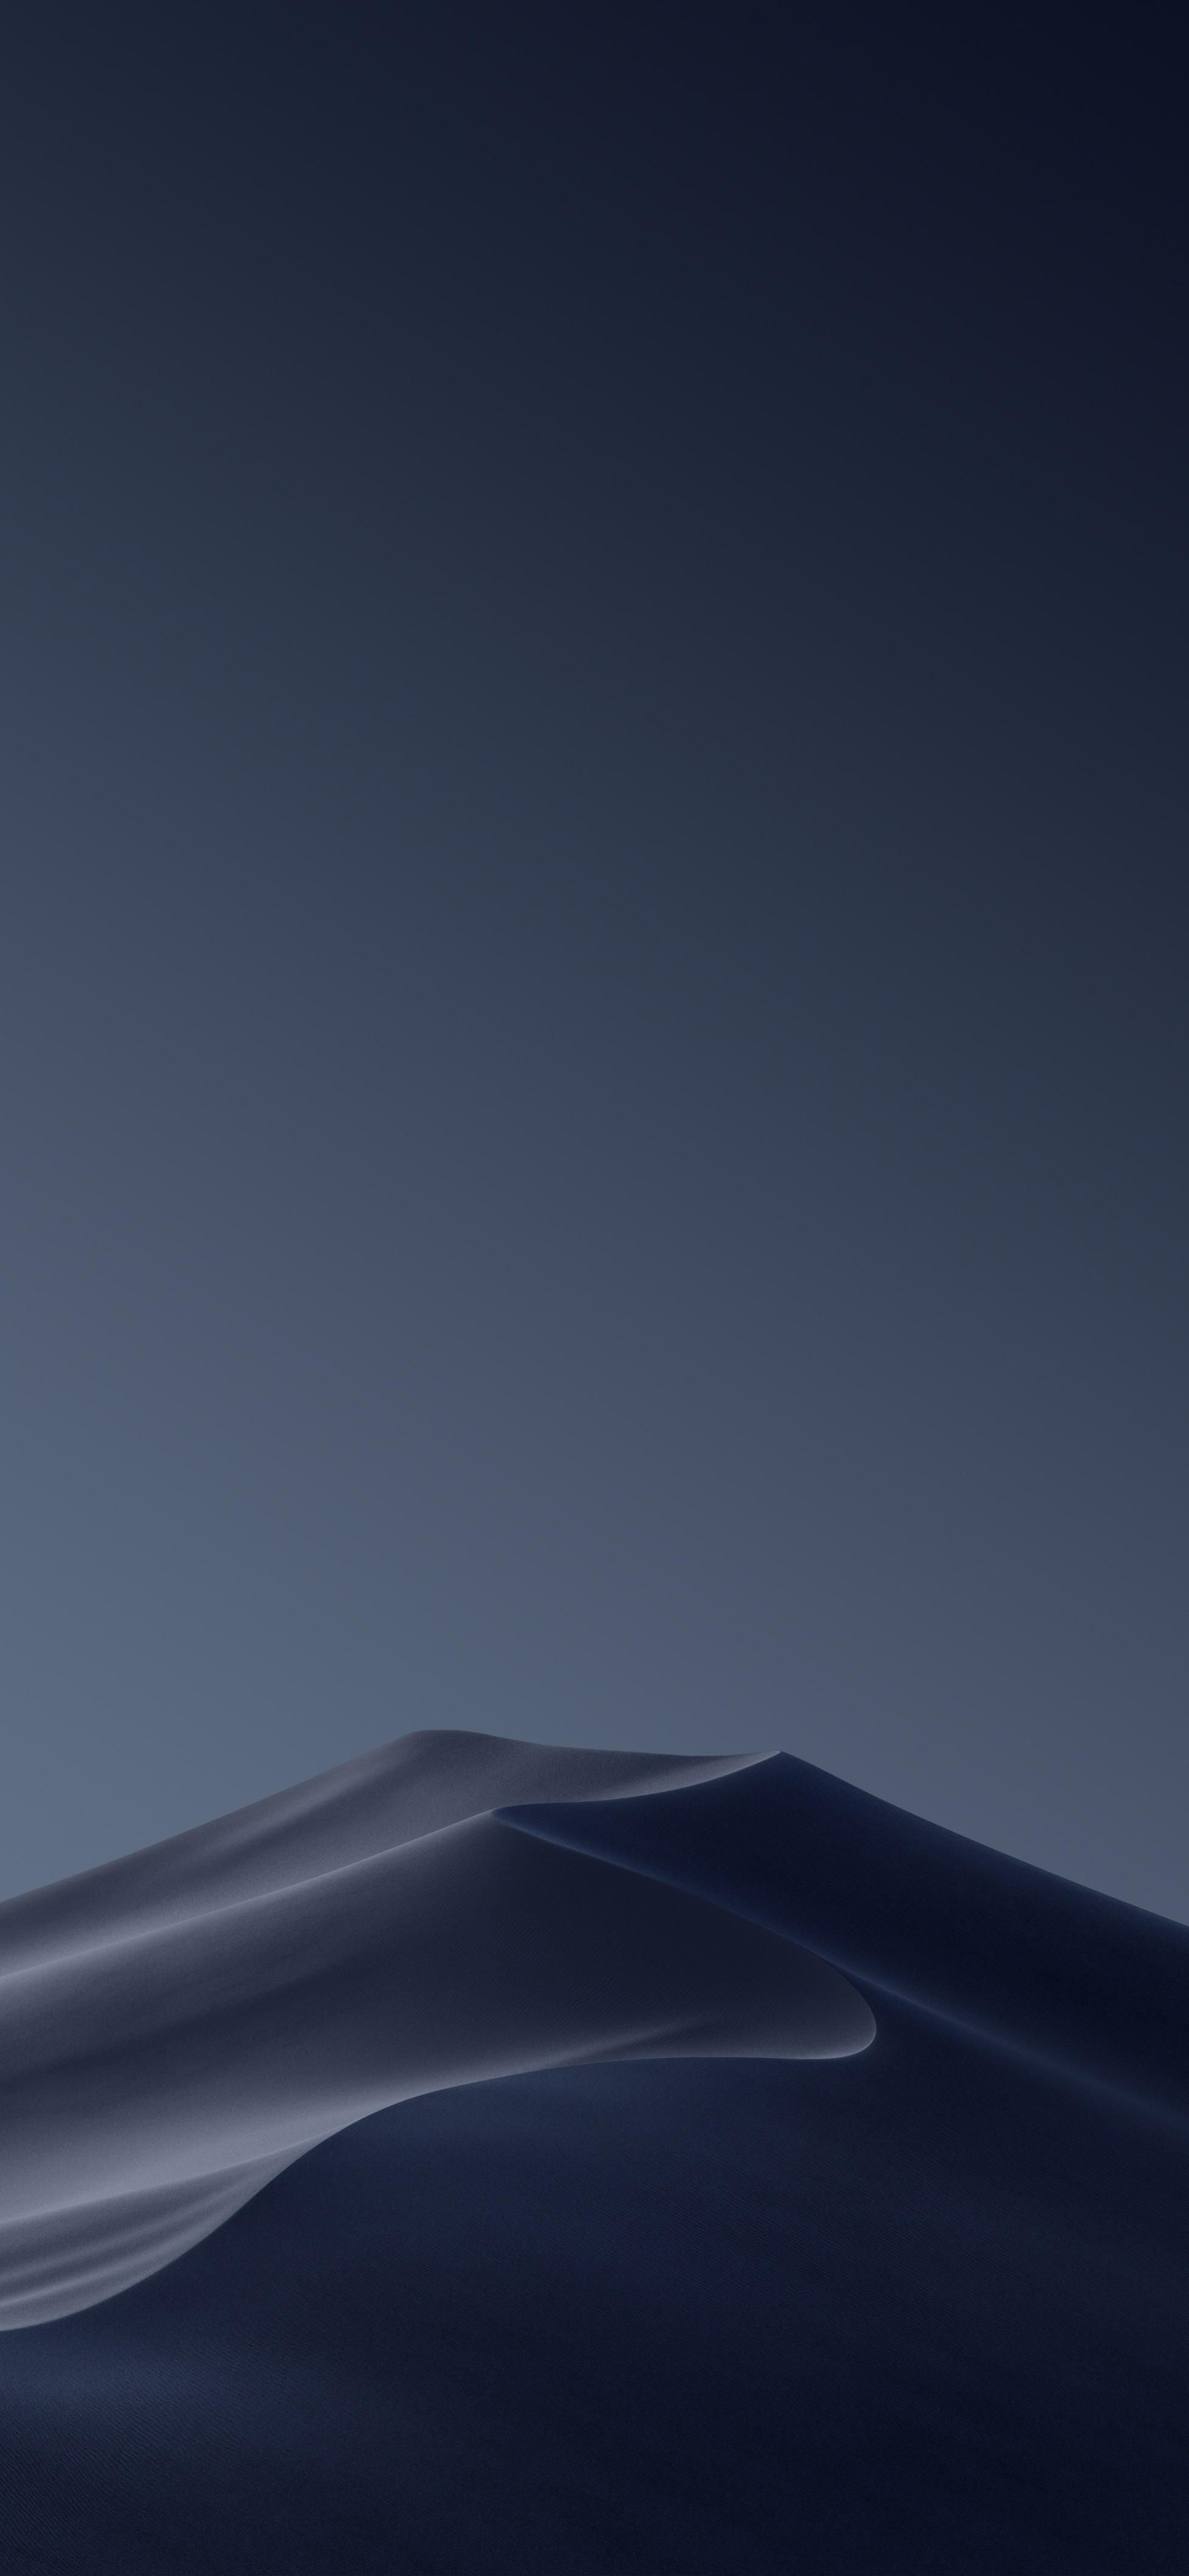 It S Not The Ios 13 Dark Mode Wallpaper But Here S The Mojave Dark Mode Wallpaper In 2020 Iphone Wallpaper Samsung Wallpaper Smartphone Wallpaper